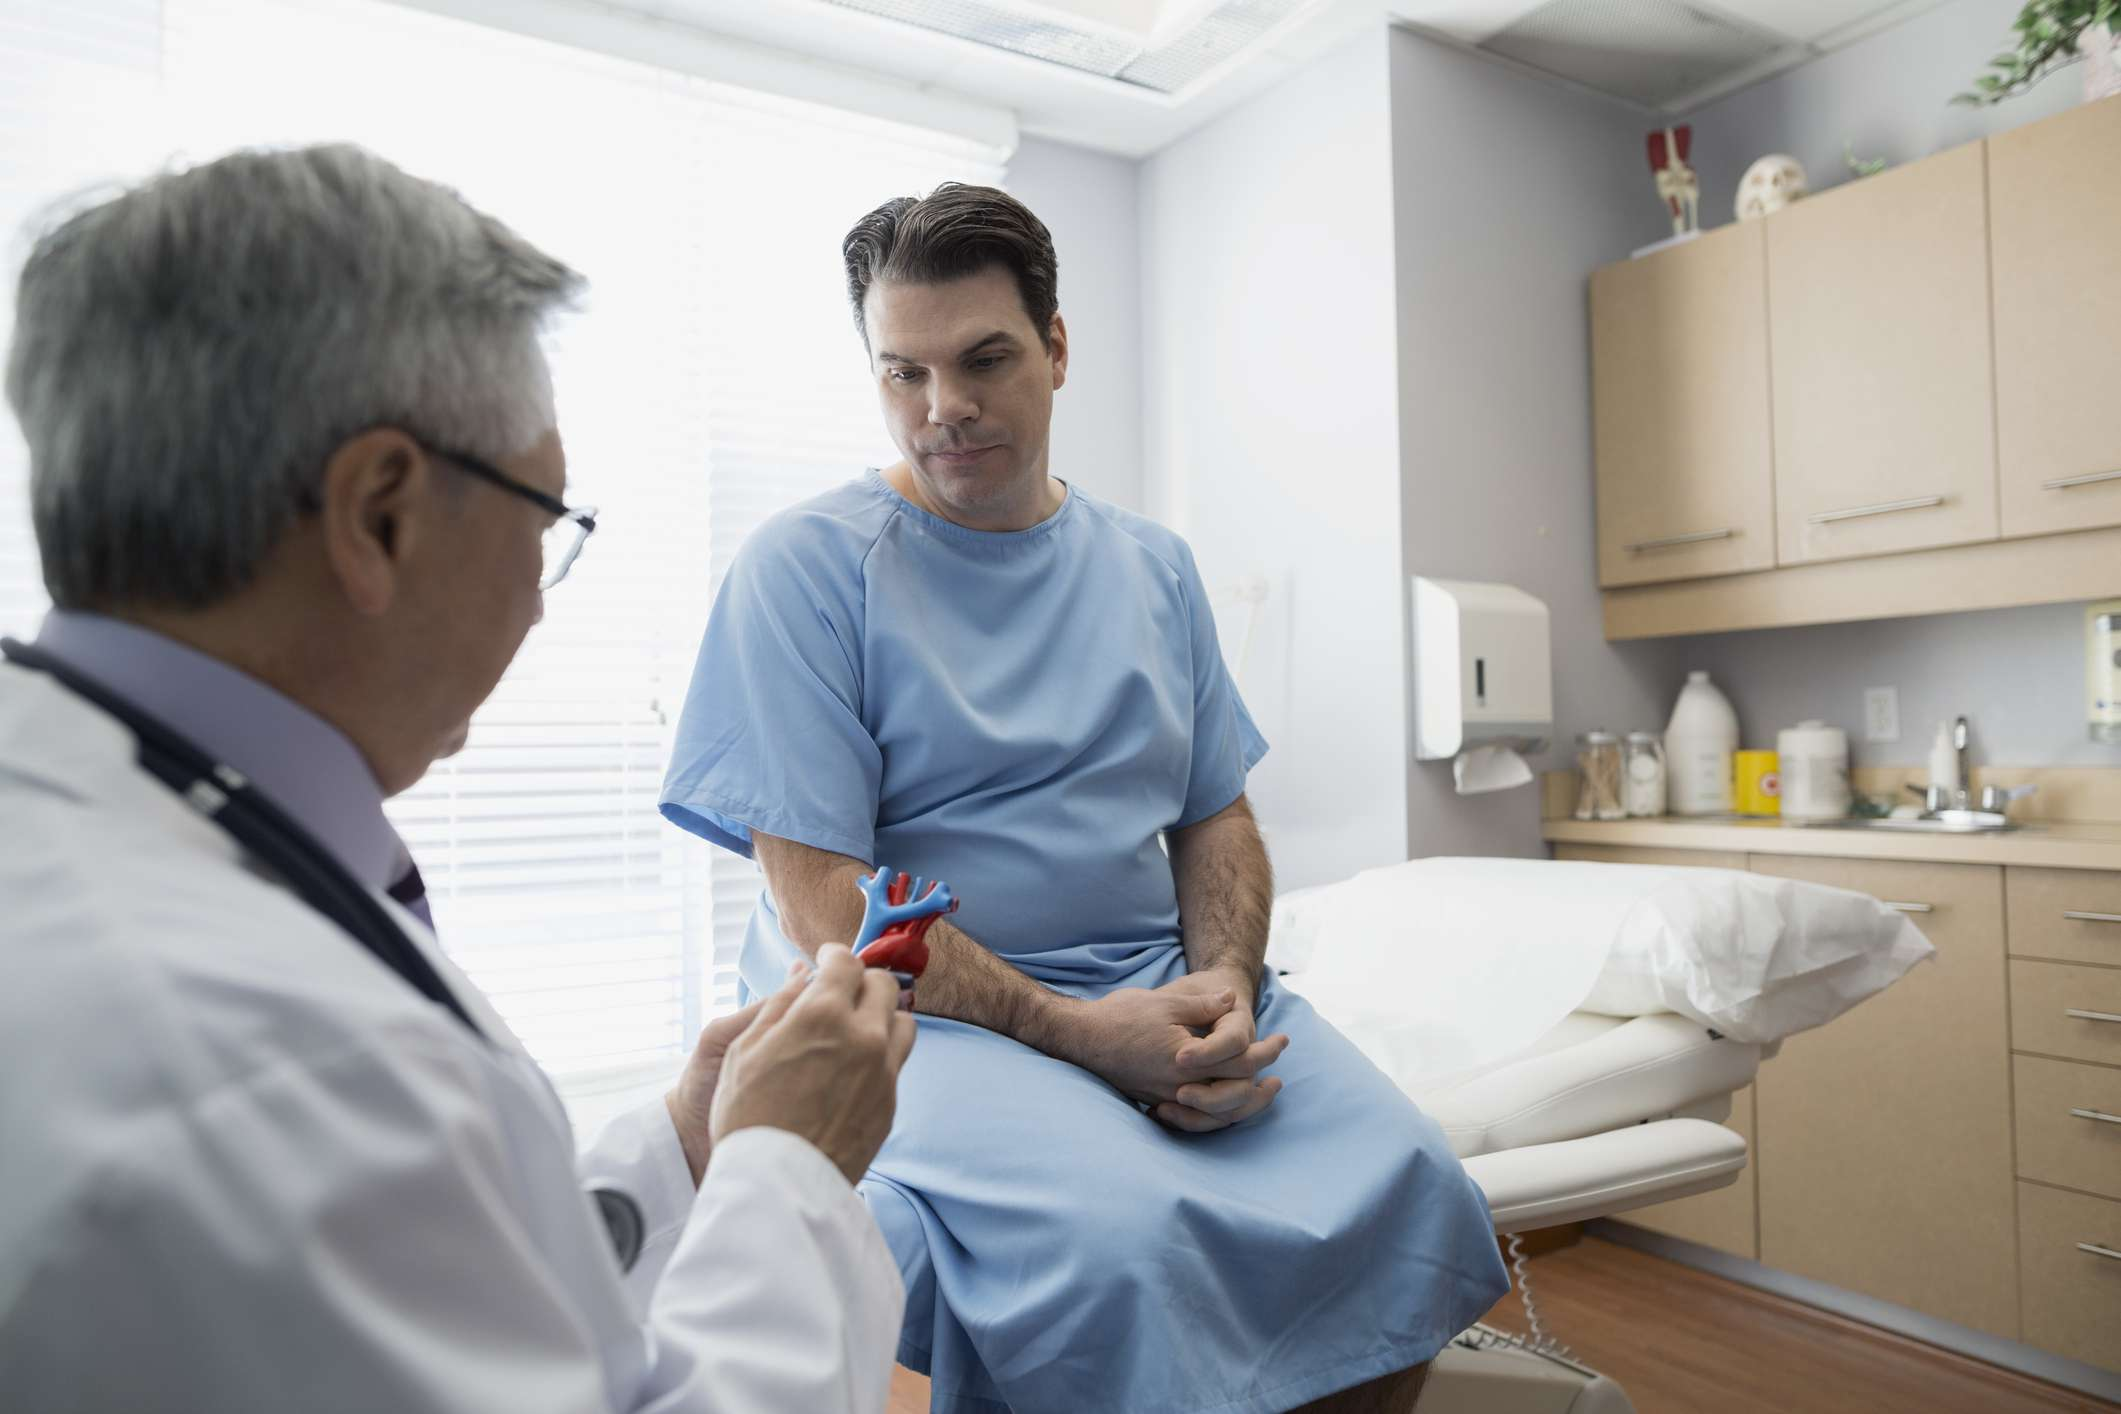 A doctor explaining a model to patient in examination room